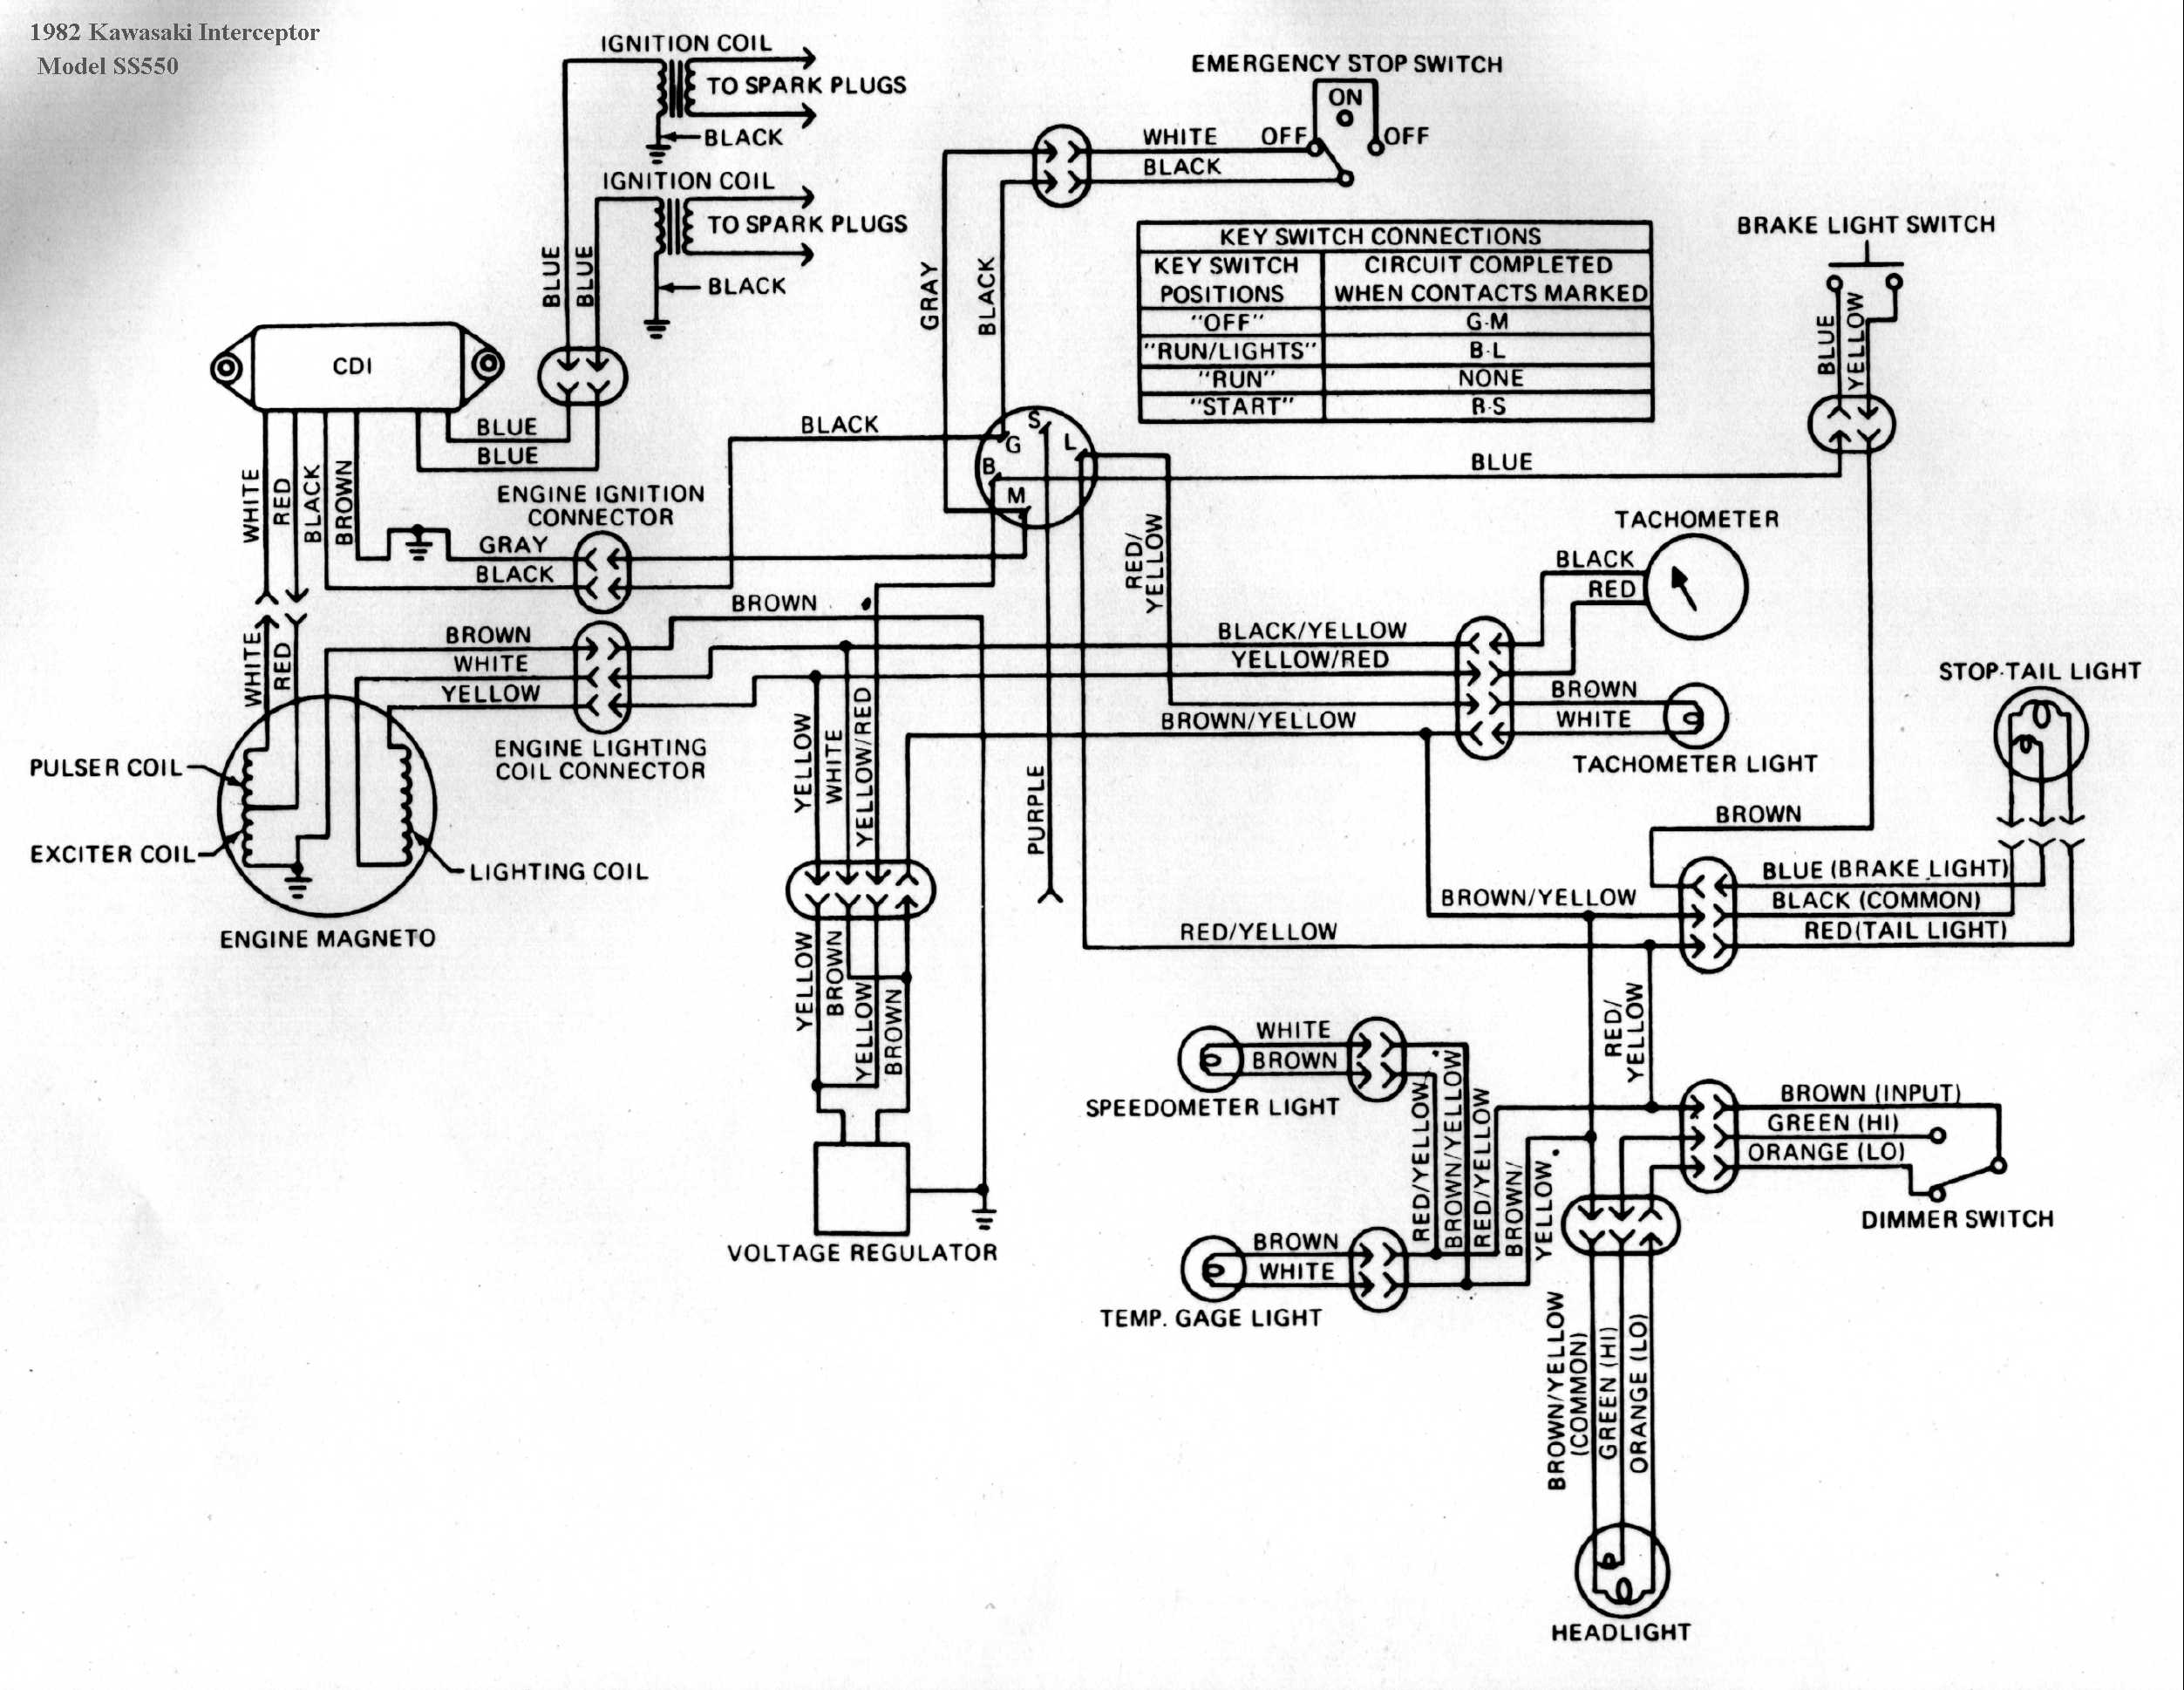 Kawasaki 1980 Kawasaki 750 LTD Wiring-Diagram 1980 Kawasaki Ltd 440 Wiring  Diagram